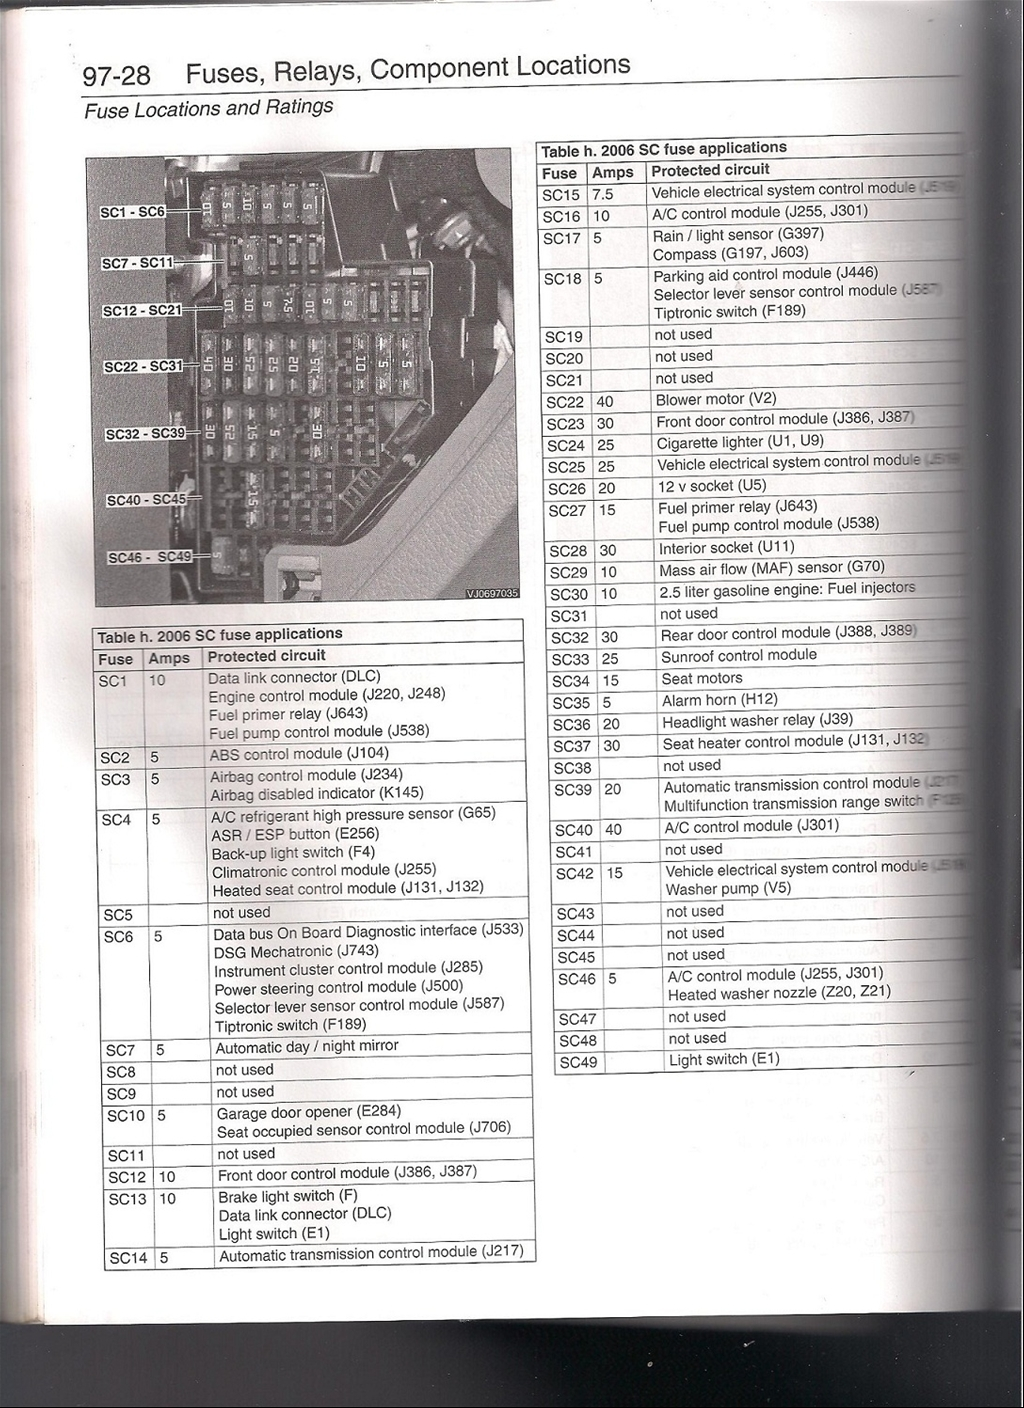 2004 vw golf fuse diagram all wiring diagram Jeep Grand Cherokee Fuse Diagram